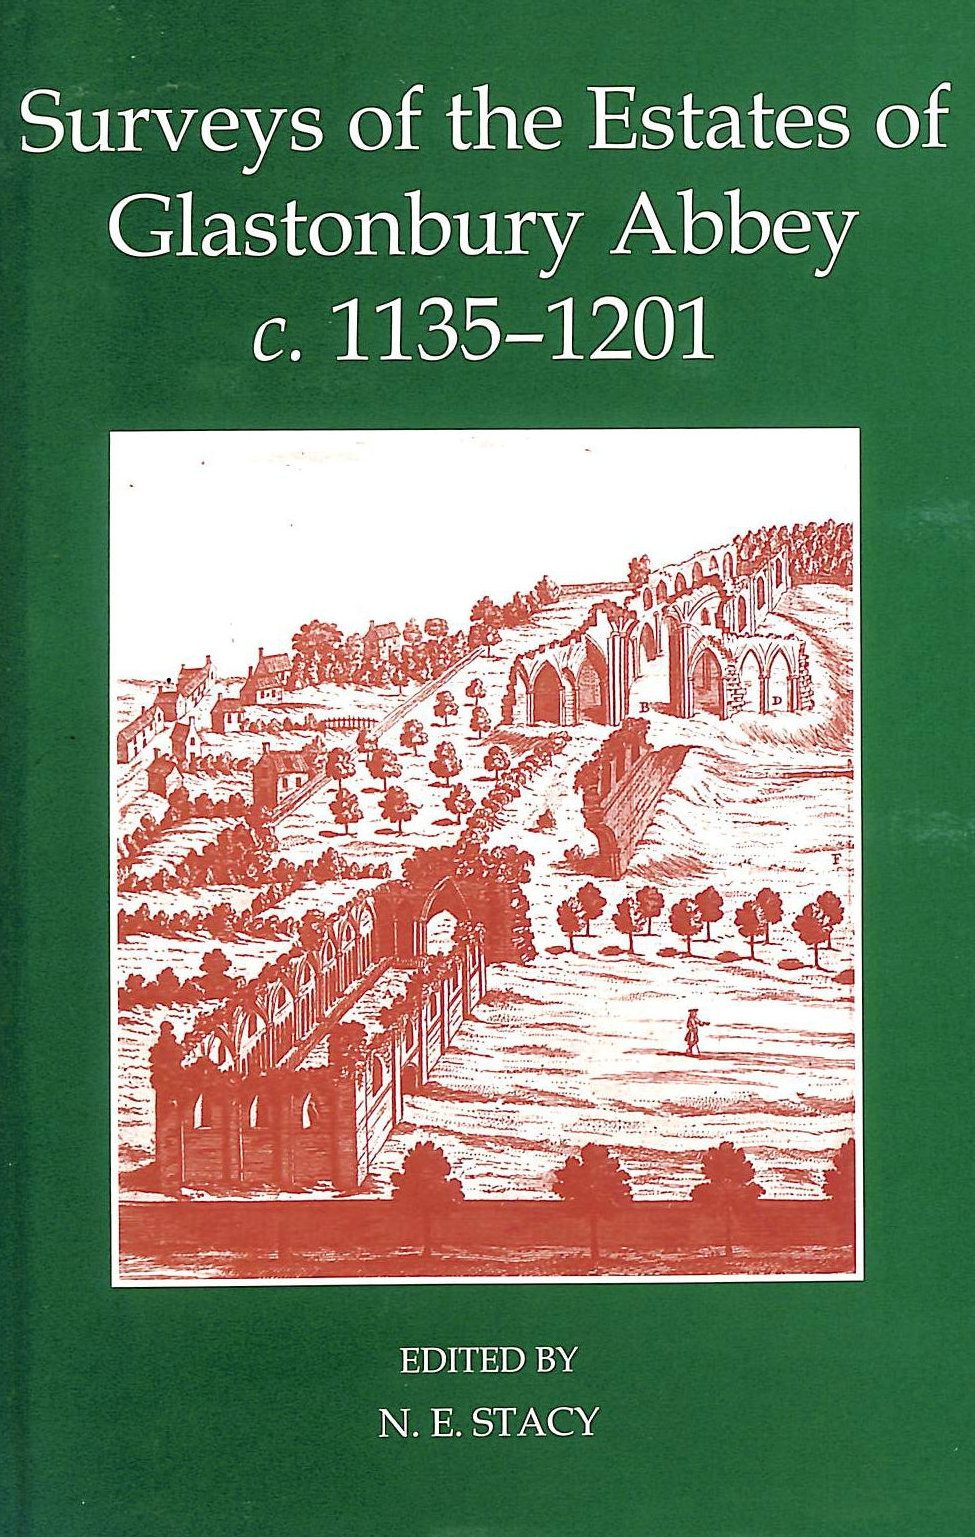 Image for Surveys of the Estates of Glastonbury Abbey, c.1135-1201 (Records of Social and Economic History (New Series))